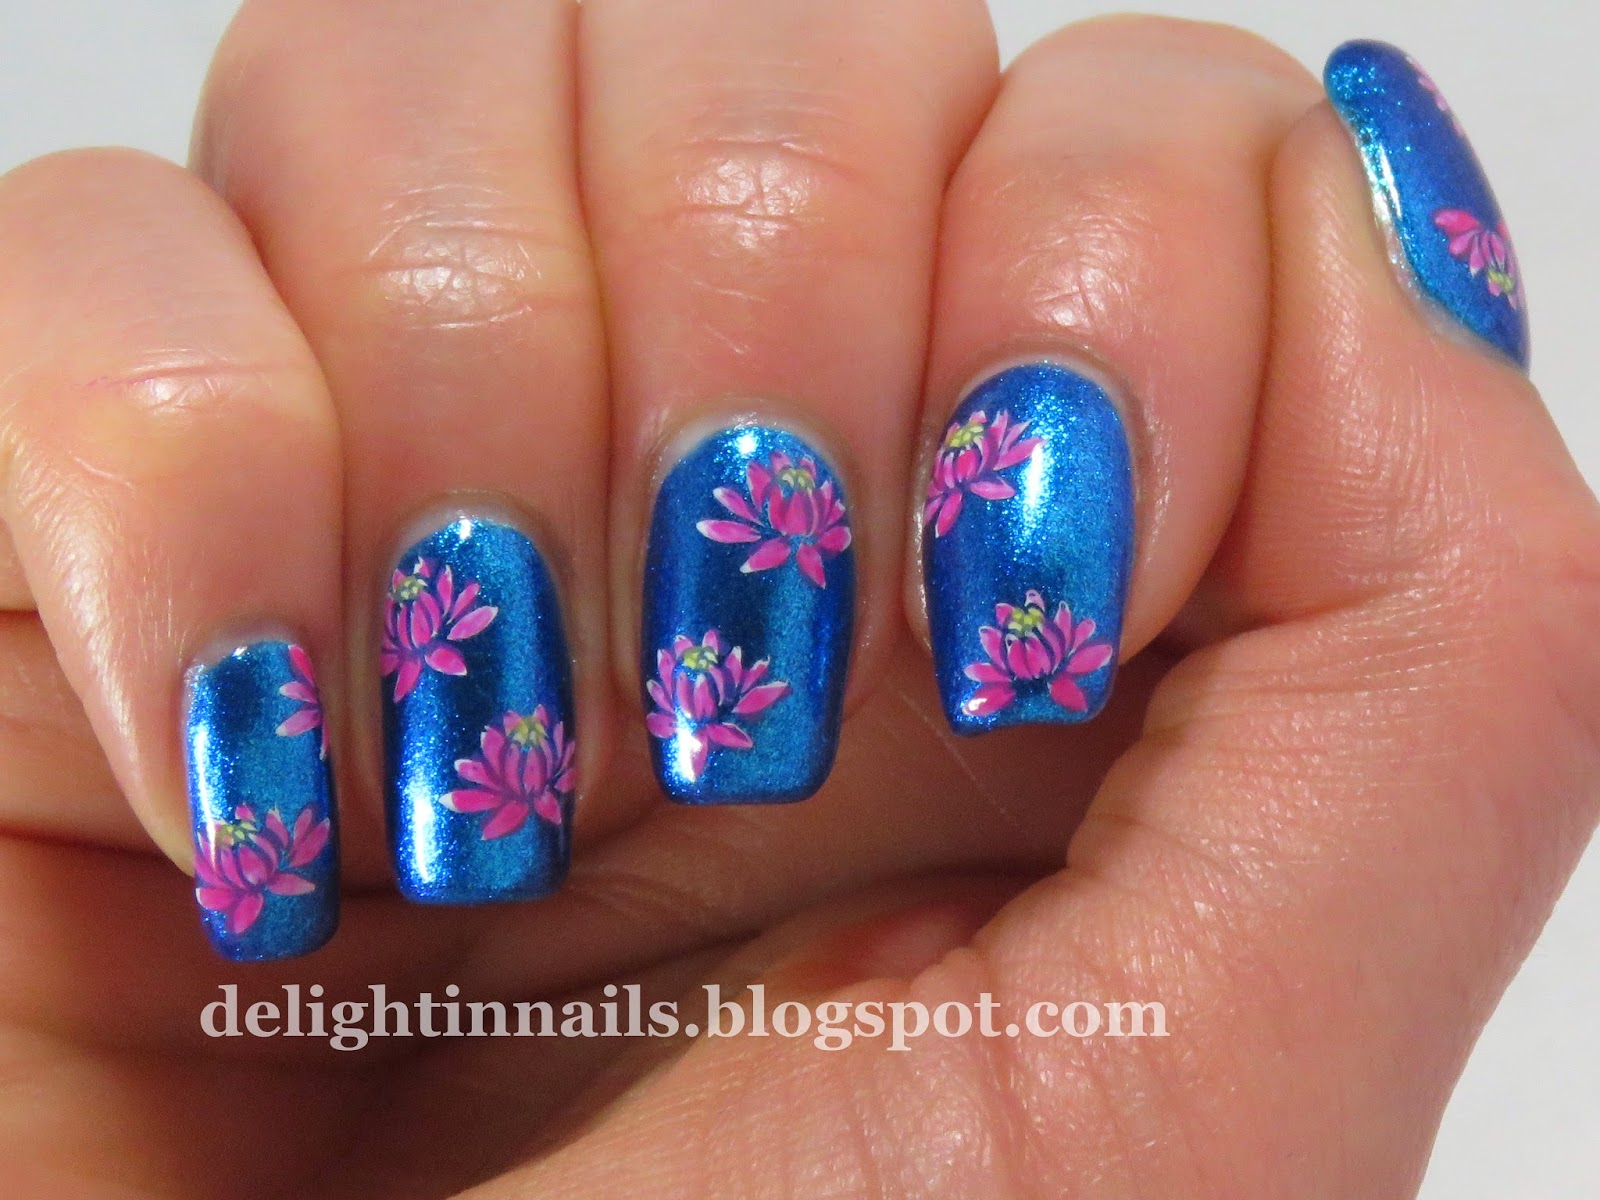 Delight In Nails: Lotus Nailart over Butter London Airy Fairy